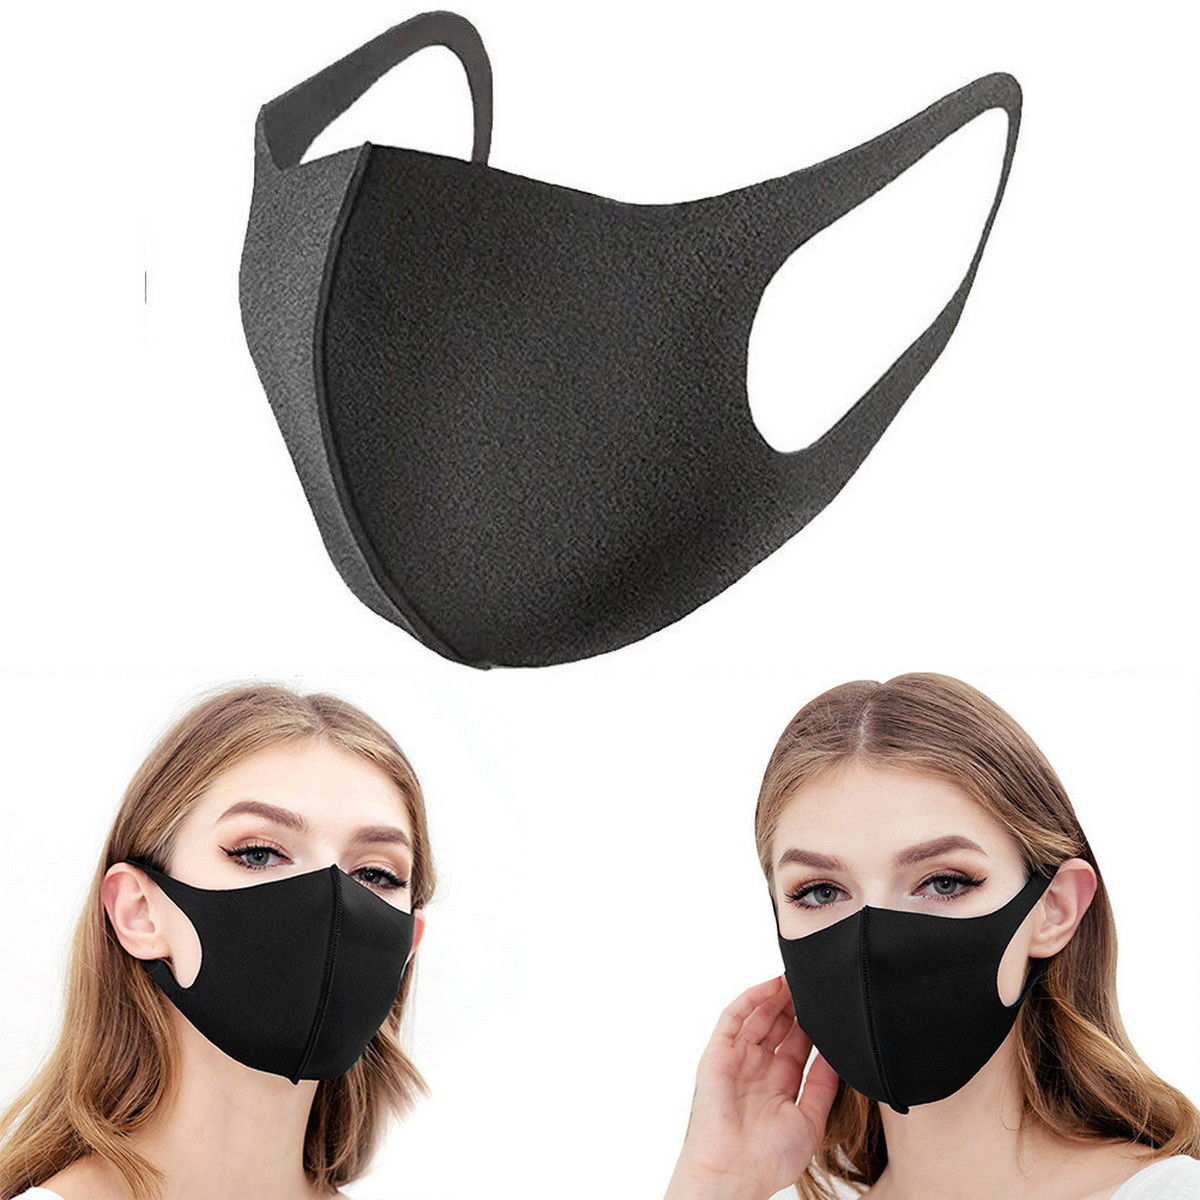 In Stock Fast Delivery Washable Masks Dustproof Environmental Protection Breathable Comfortable Mask Individually Packaged